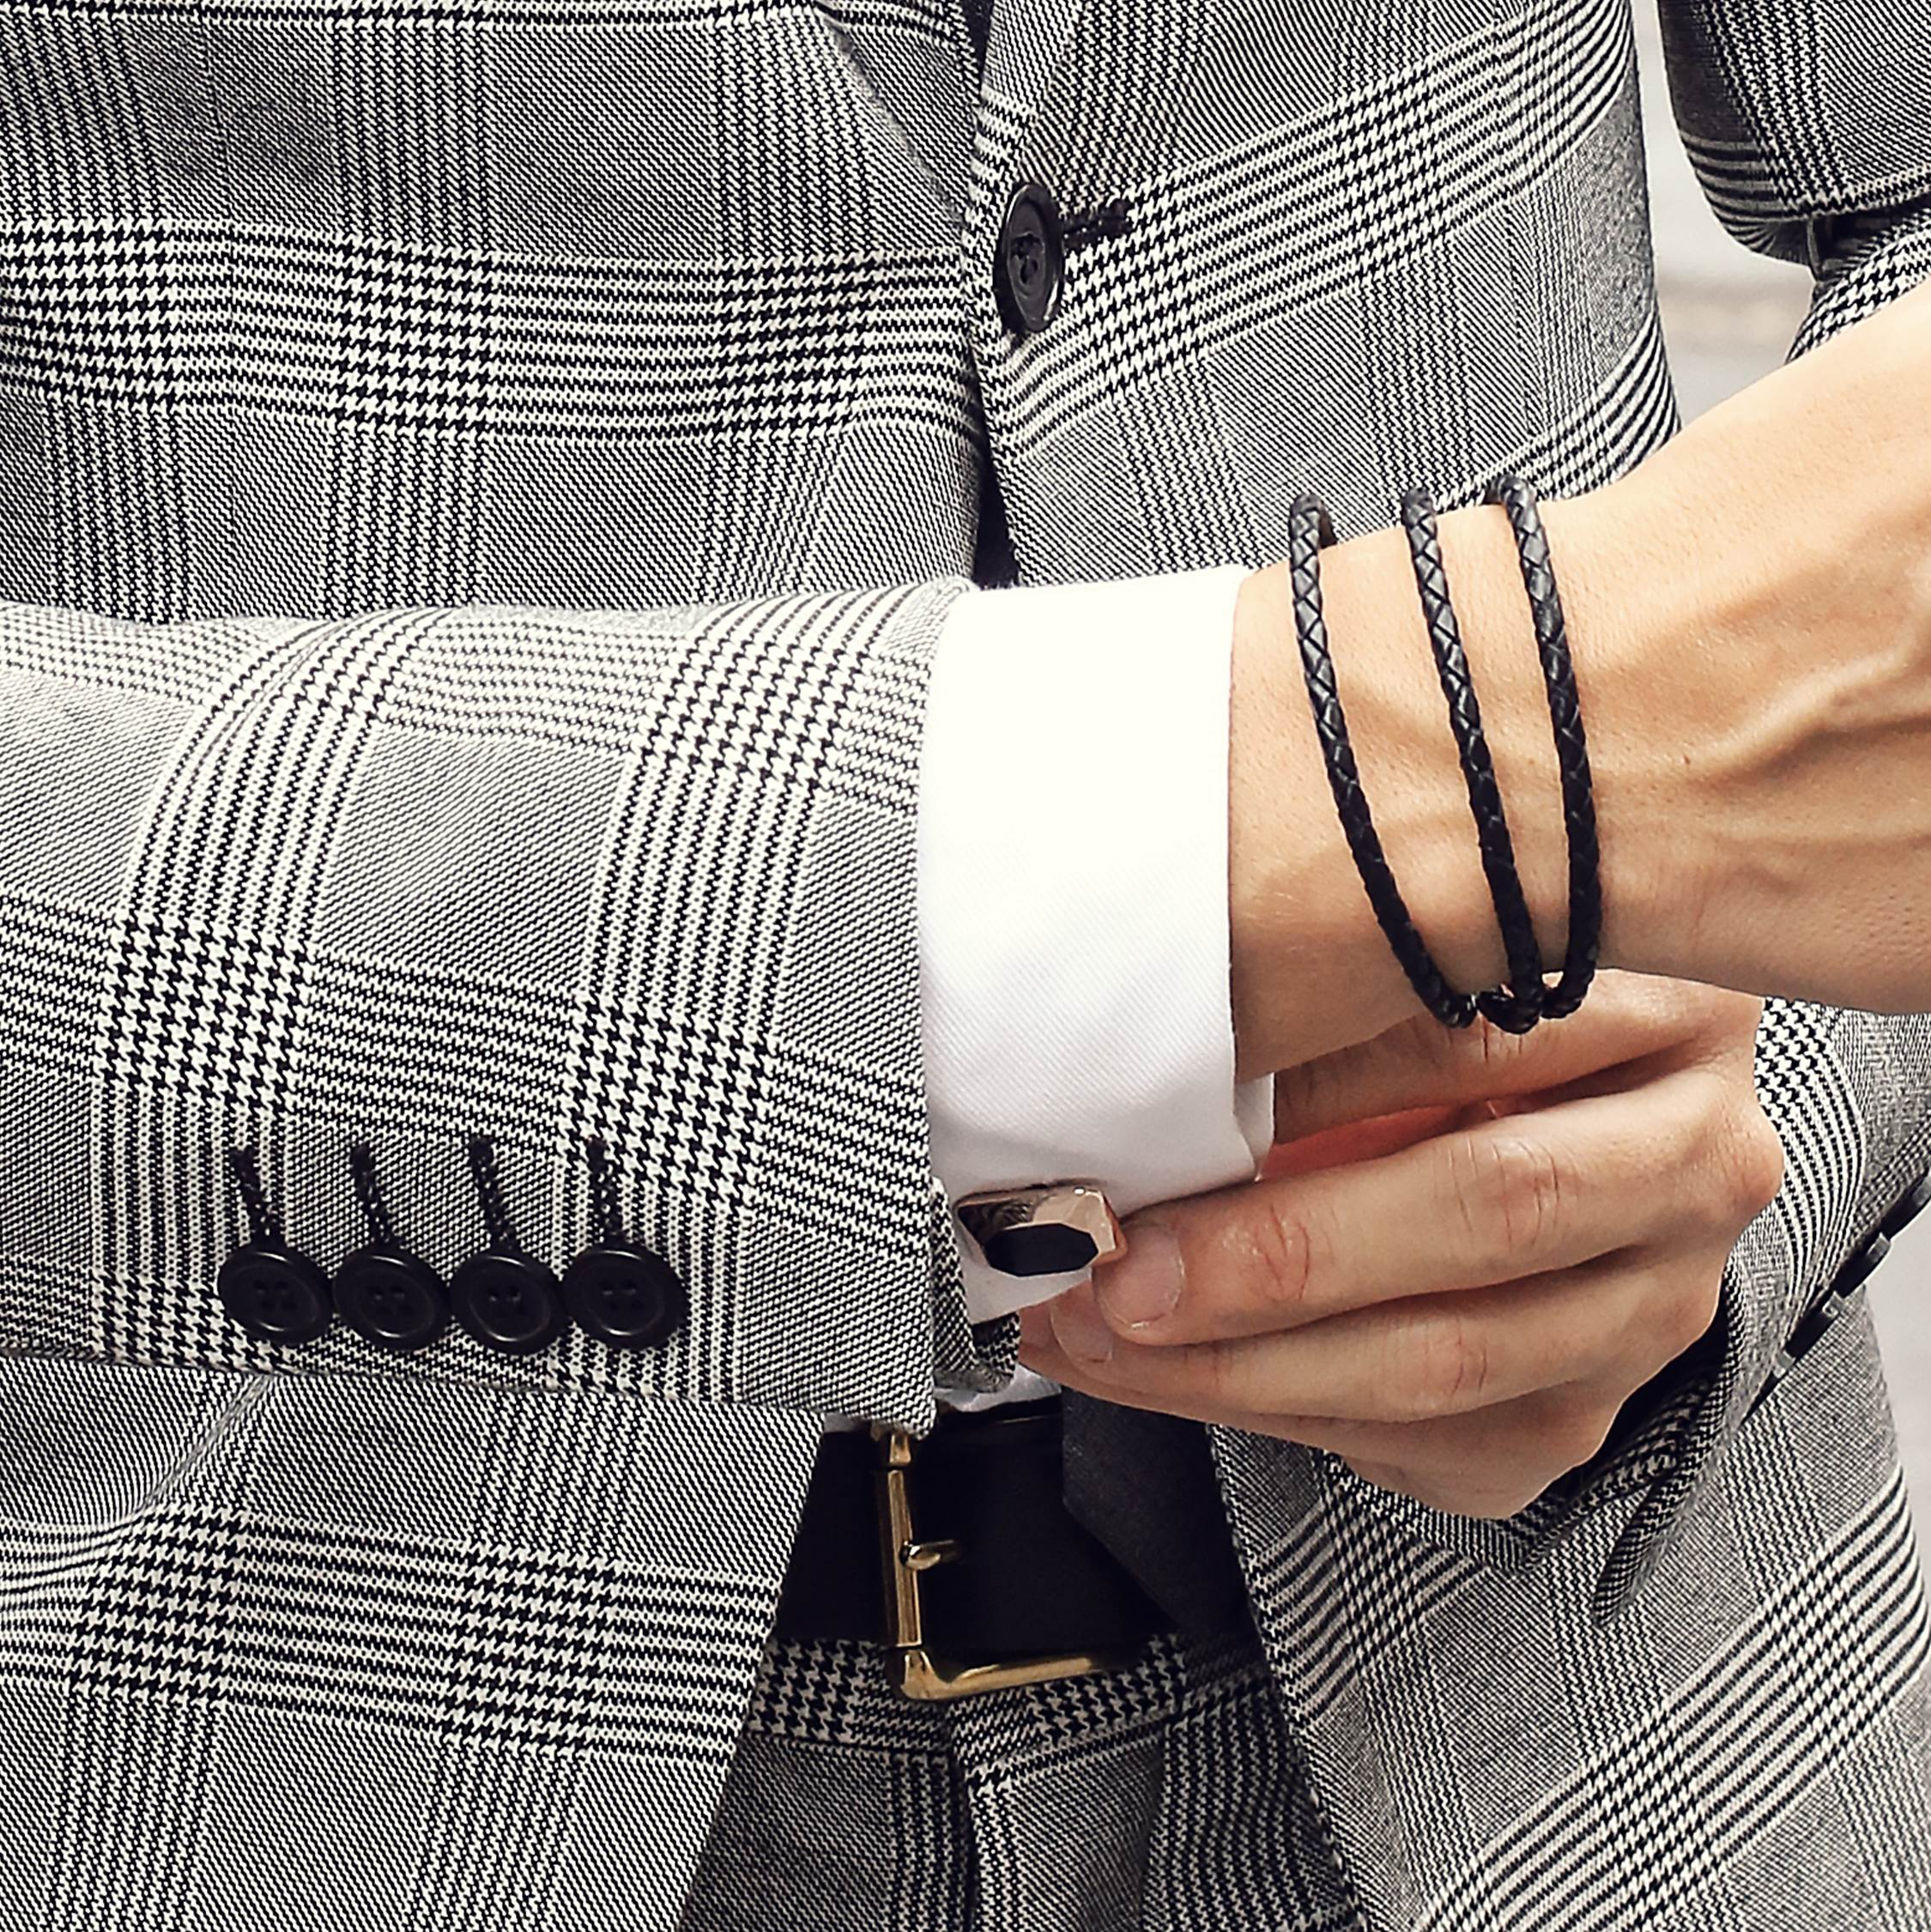 Sergio Ines (@whatmyboyfriendwore) with Elite & Luck Cufflinks